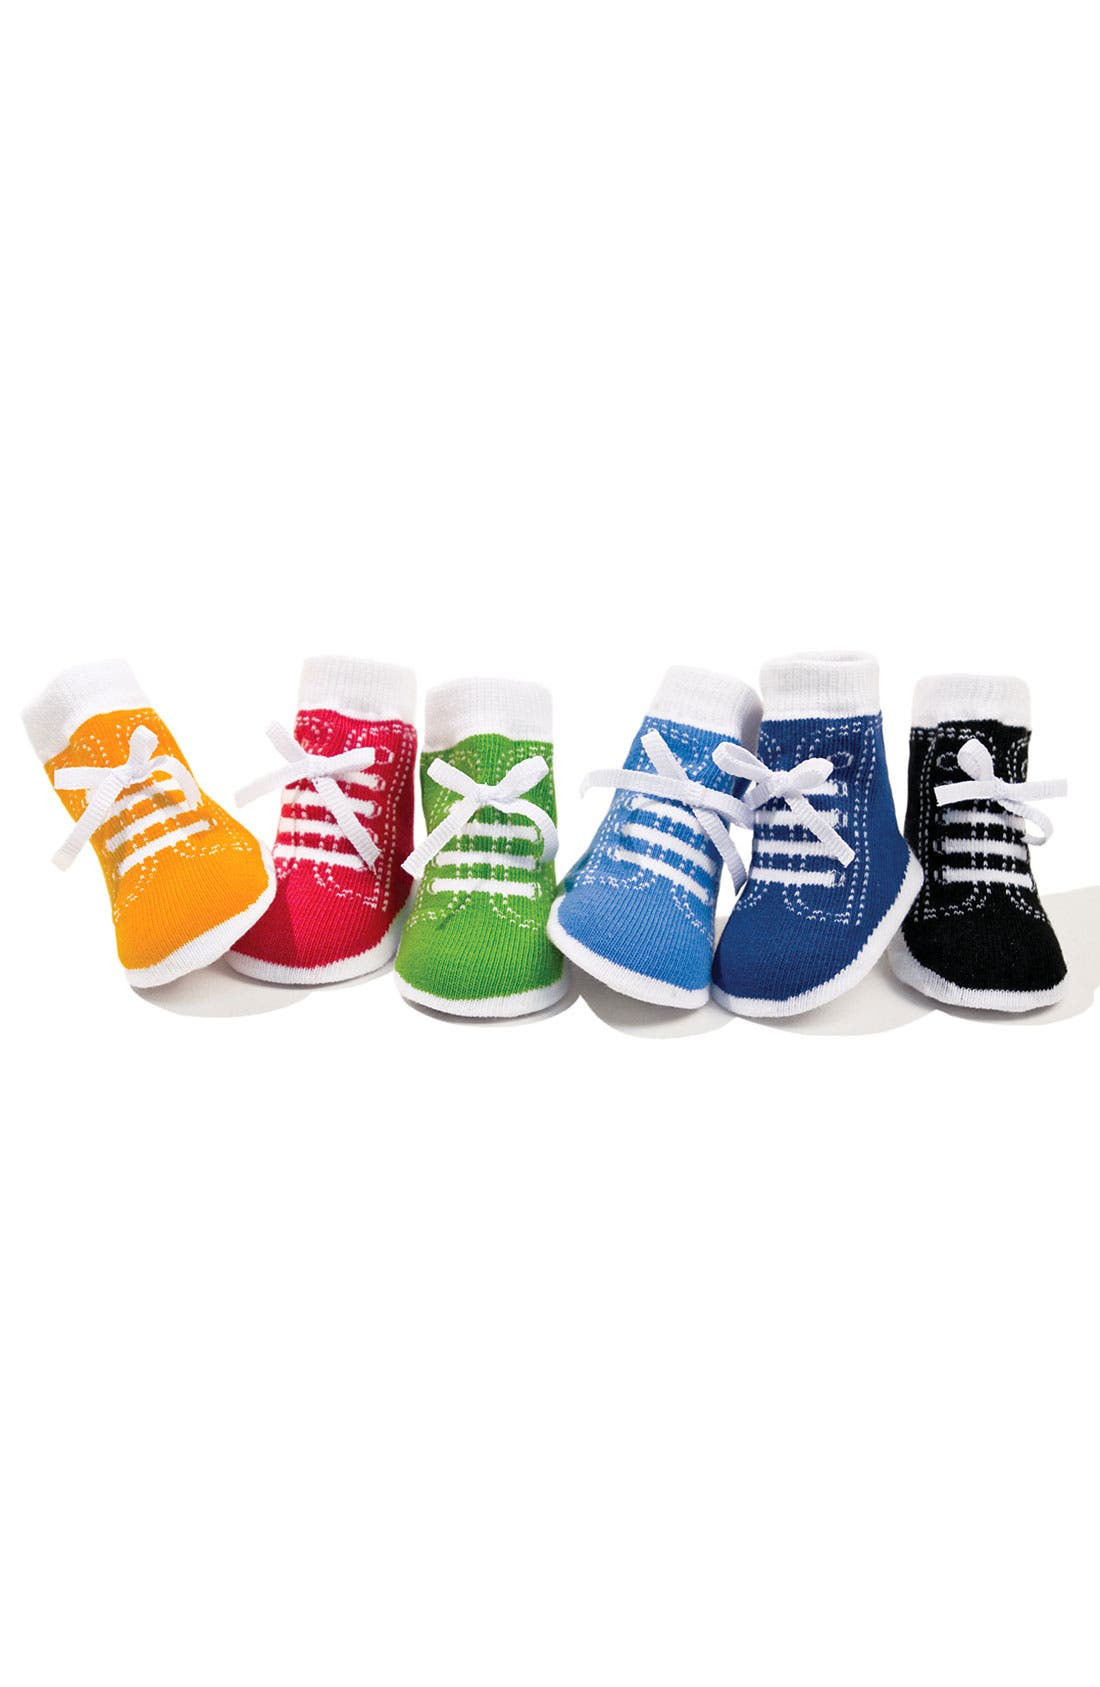 Alternate Image 1 Selected - Trumpette Socks (Baby Boys)